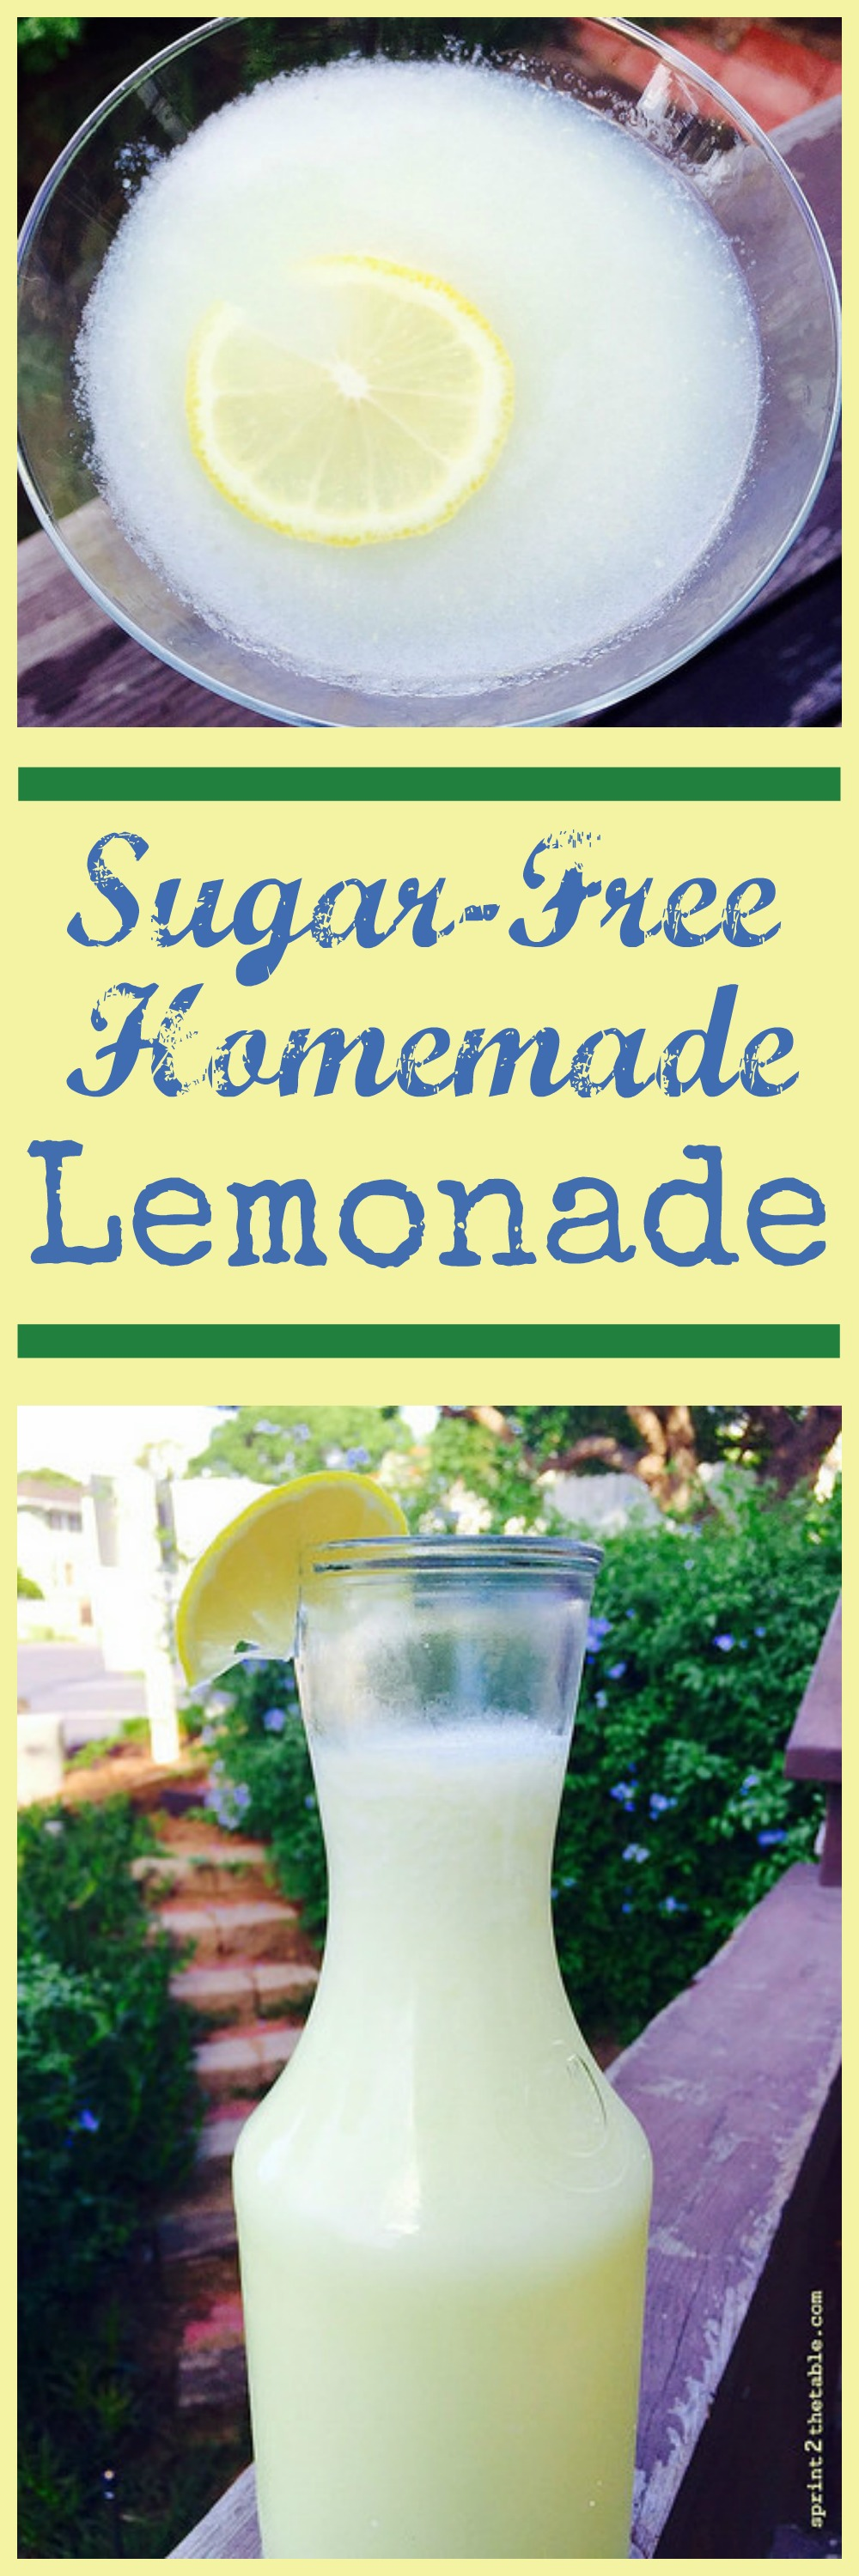 Sugar-Free Homemade Lemonade